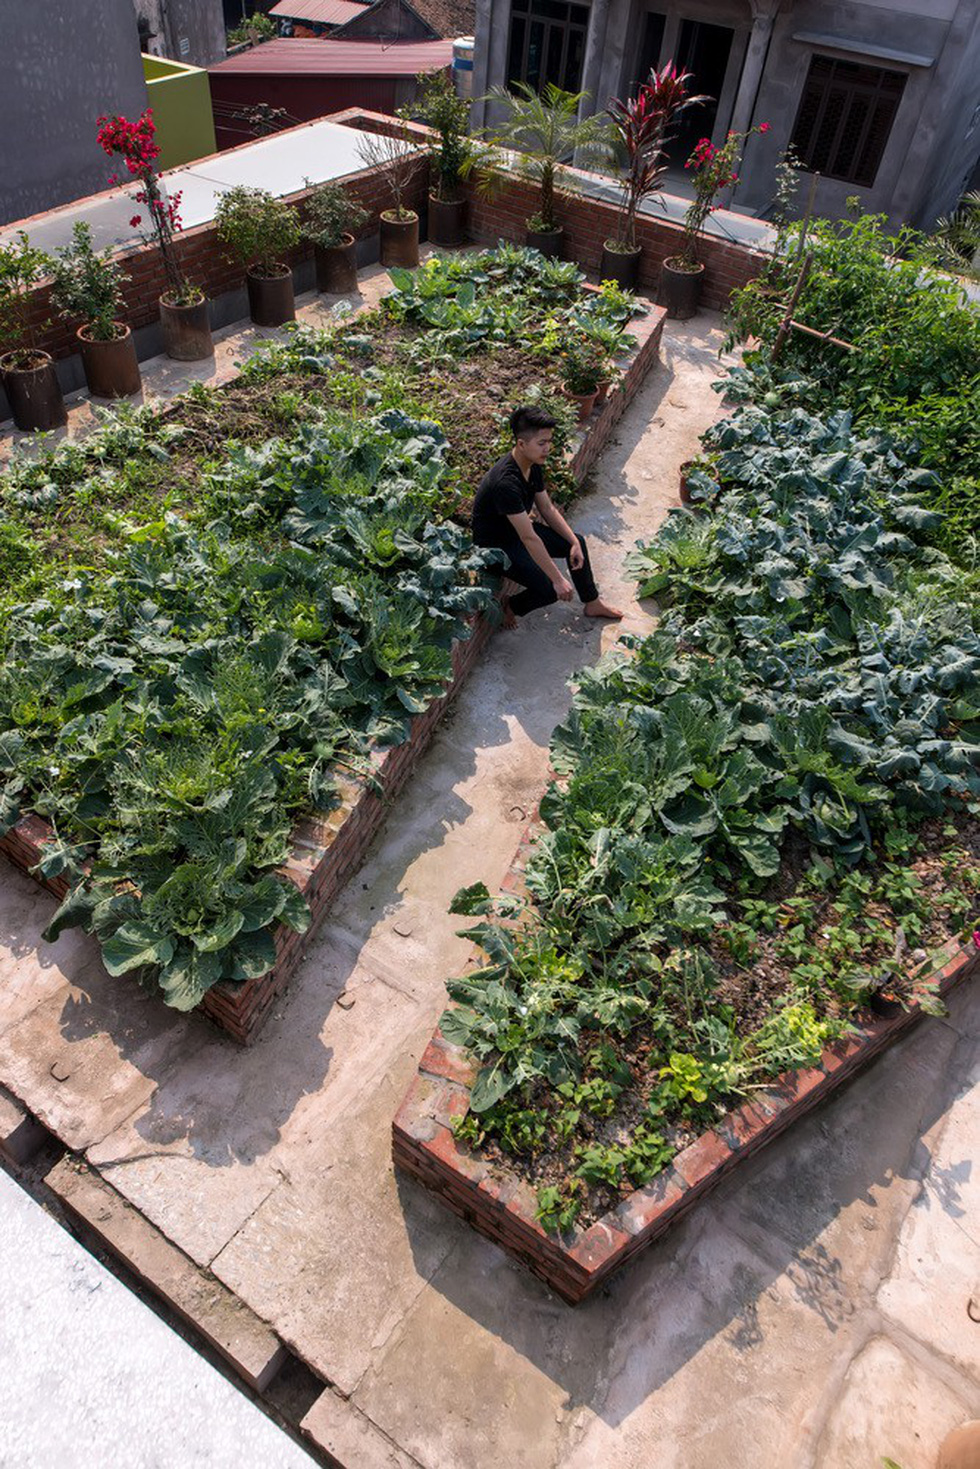 A vegetables garden is planted on the roof of the brick 'cave house'